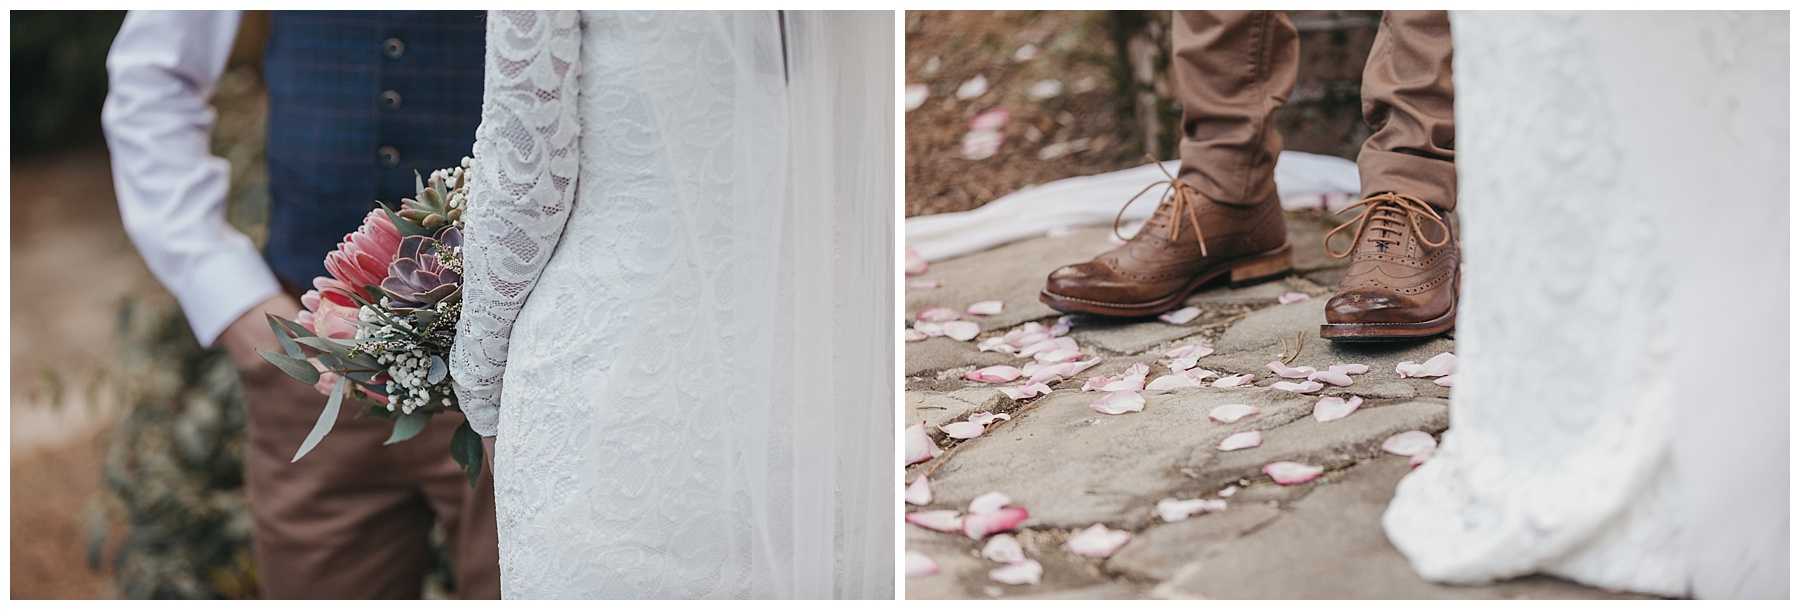 The groom wearing brown leather shoes and details of the brides wedding dress and veil